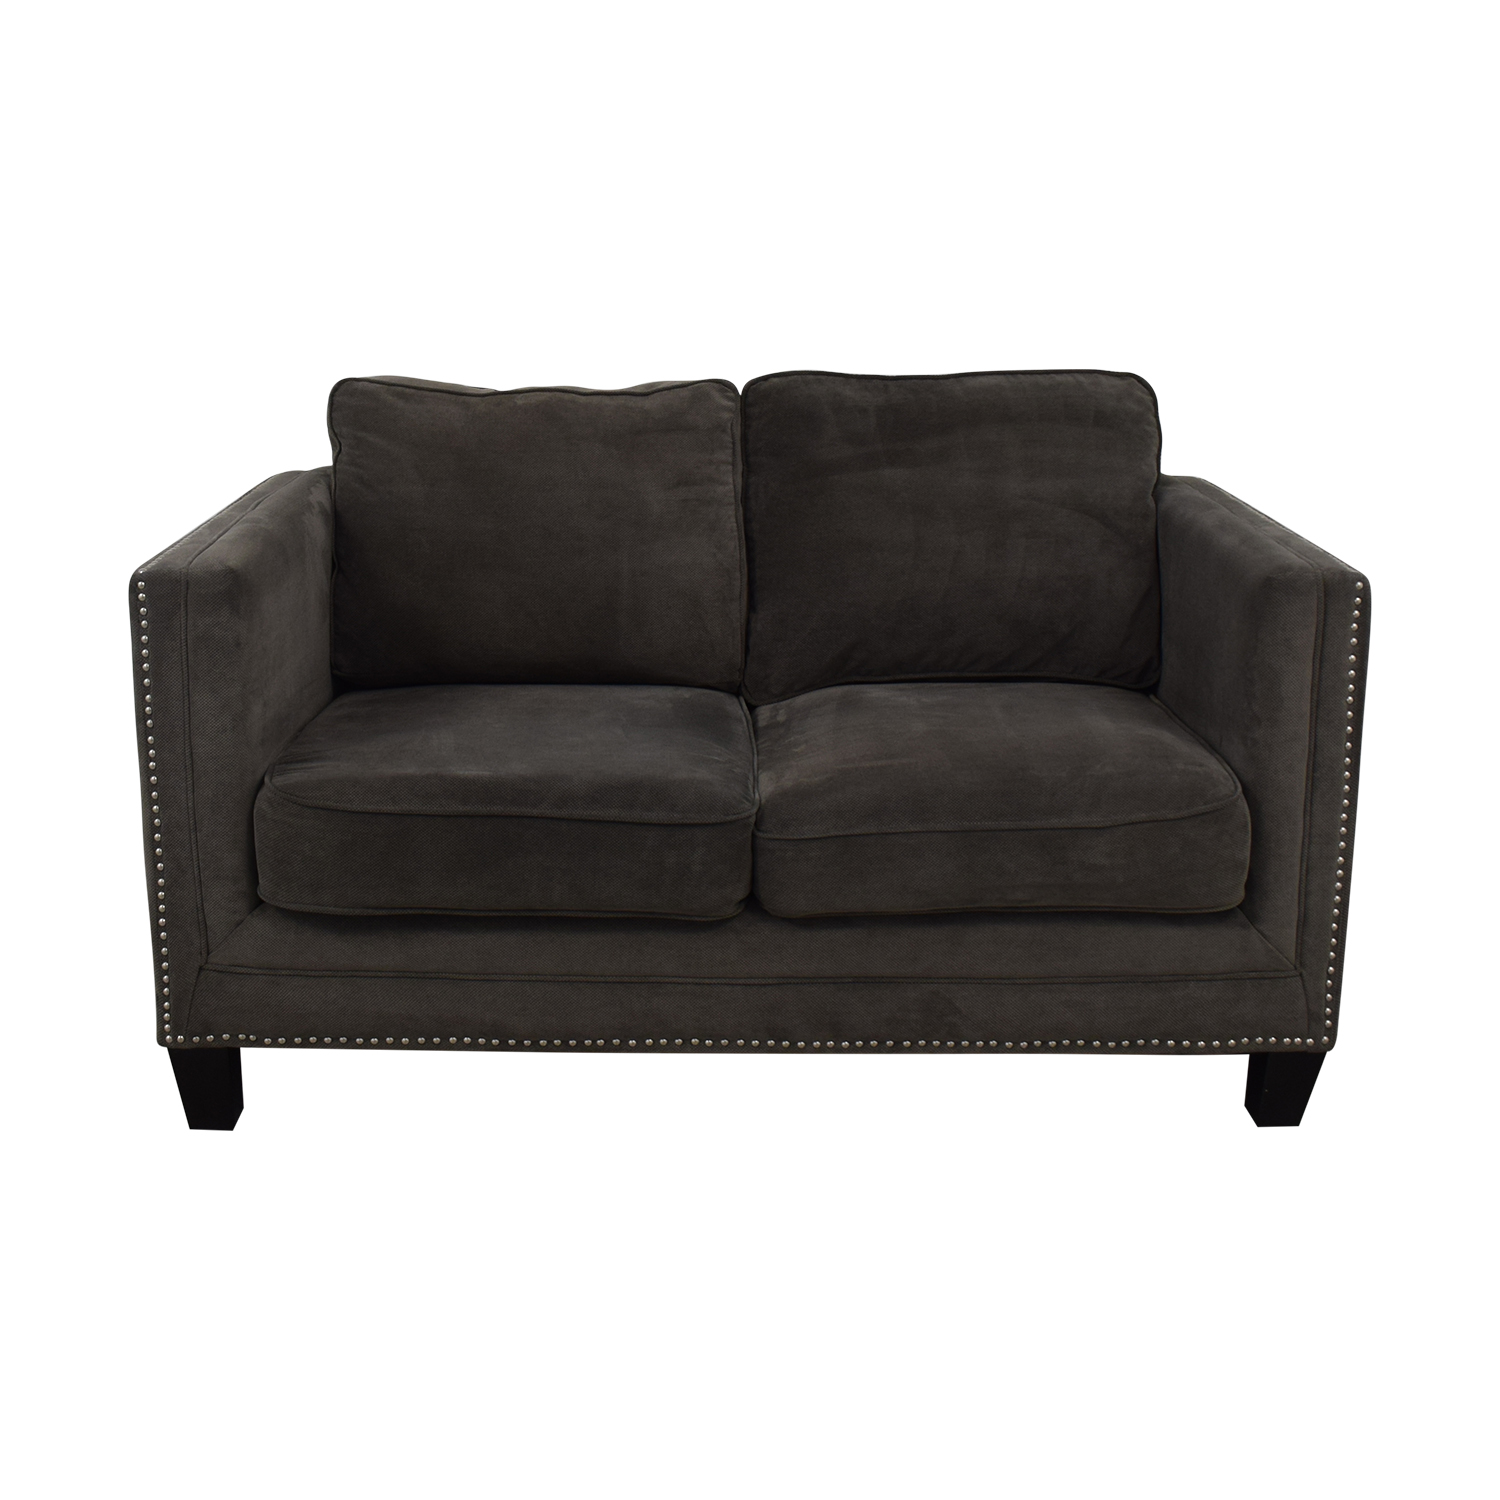 shop Emerald Home Furnishings Carlton Loveseat Emerald Home Furnishings